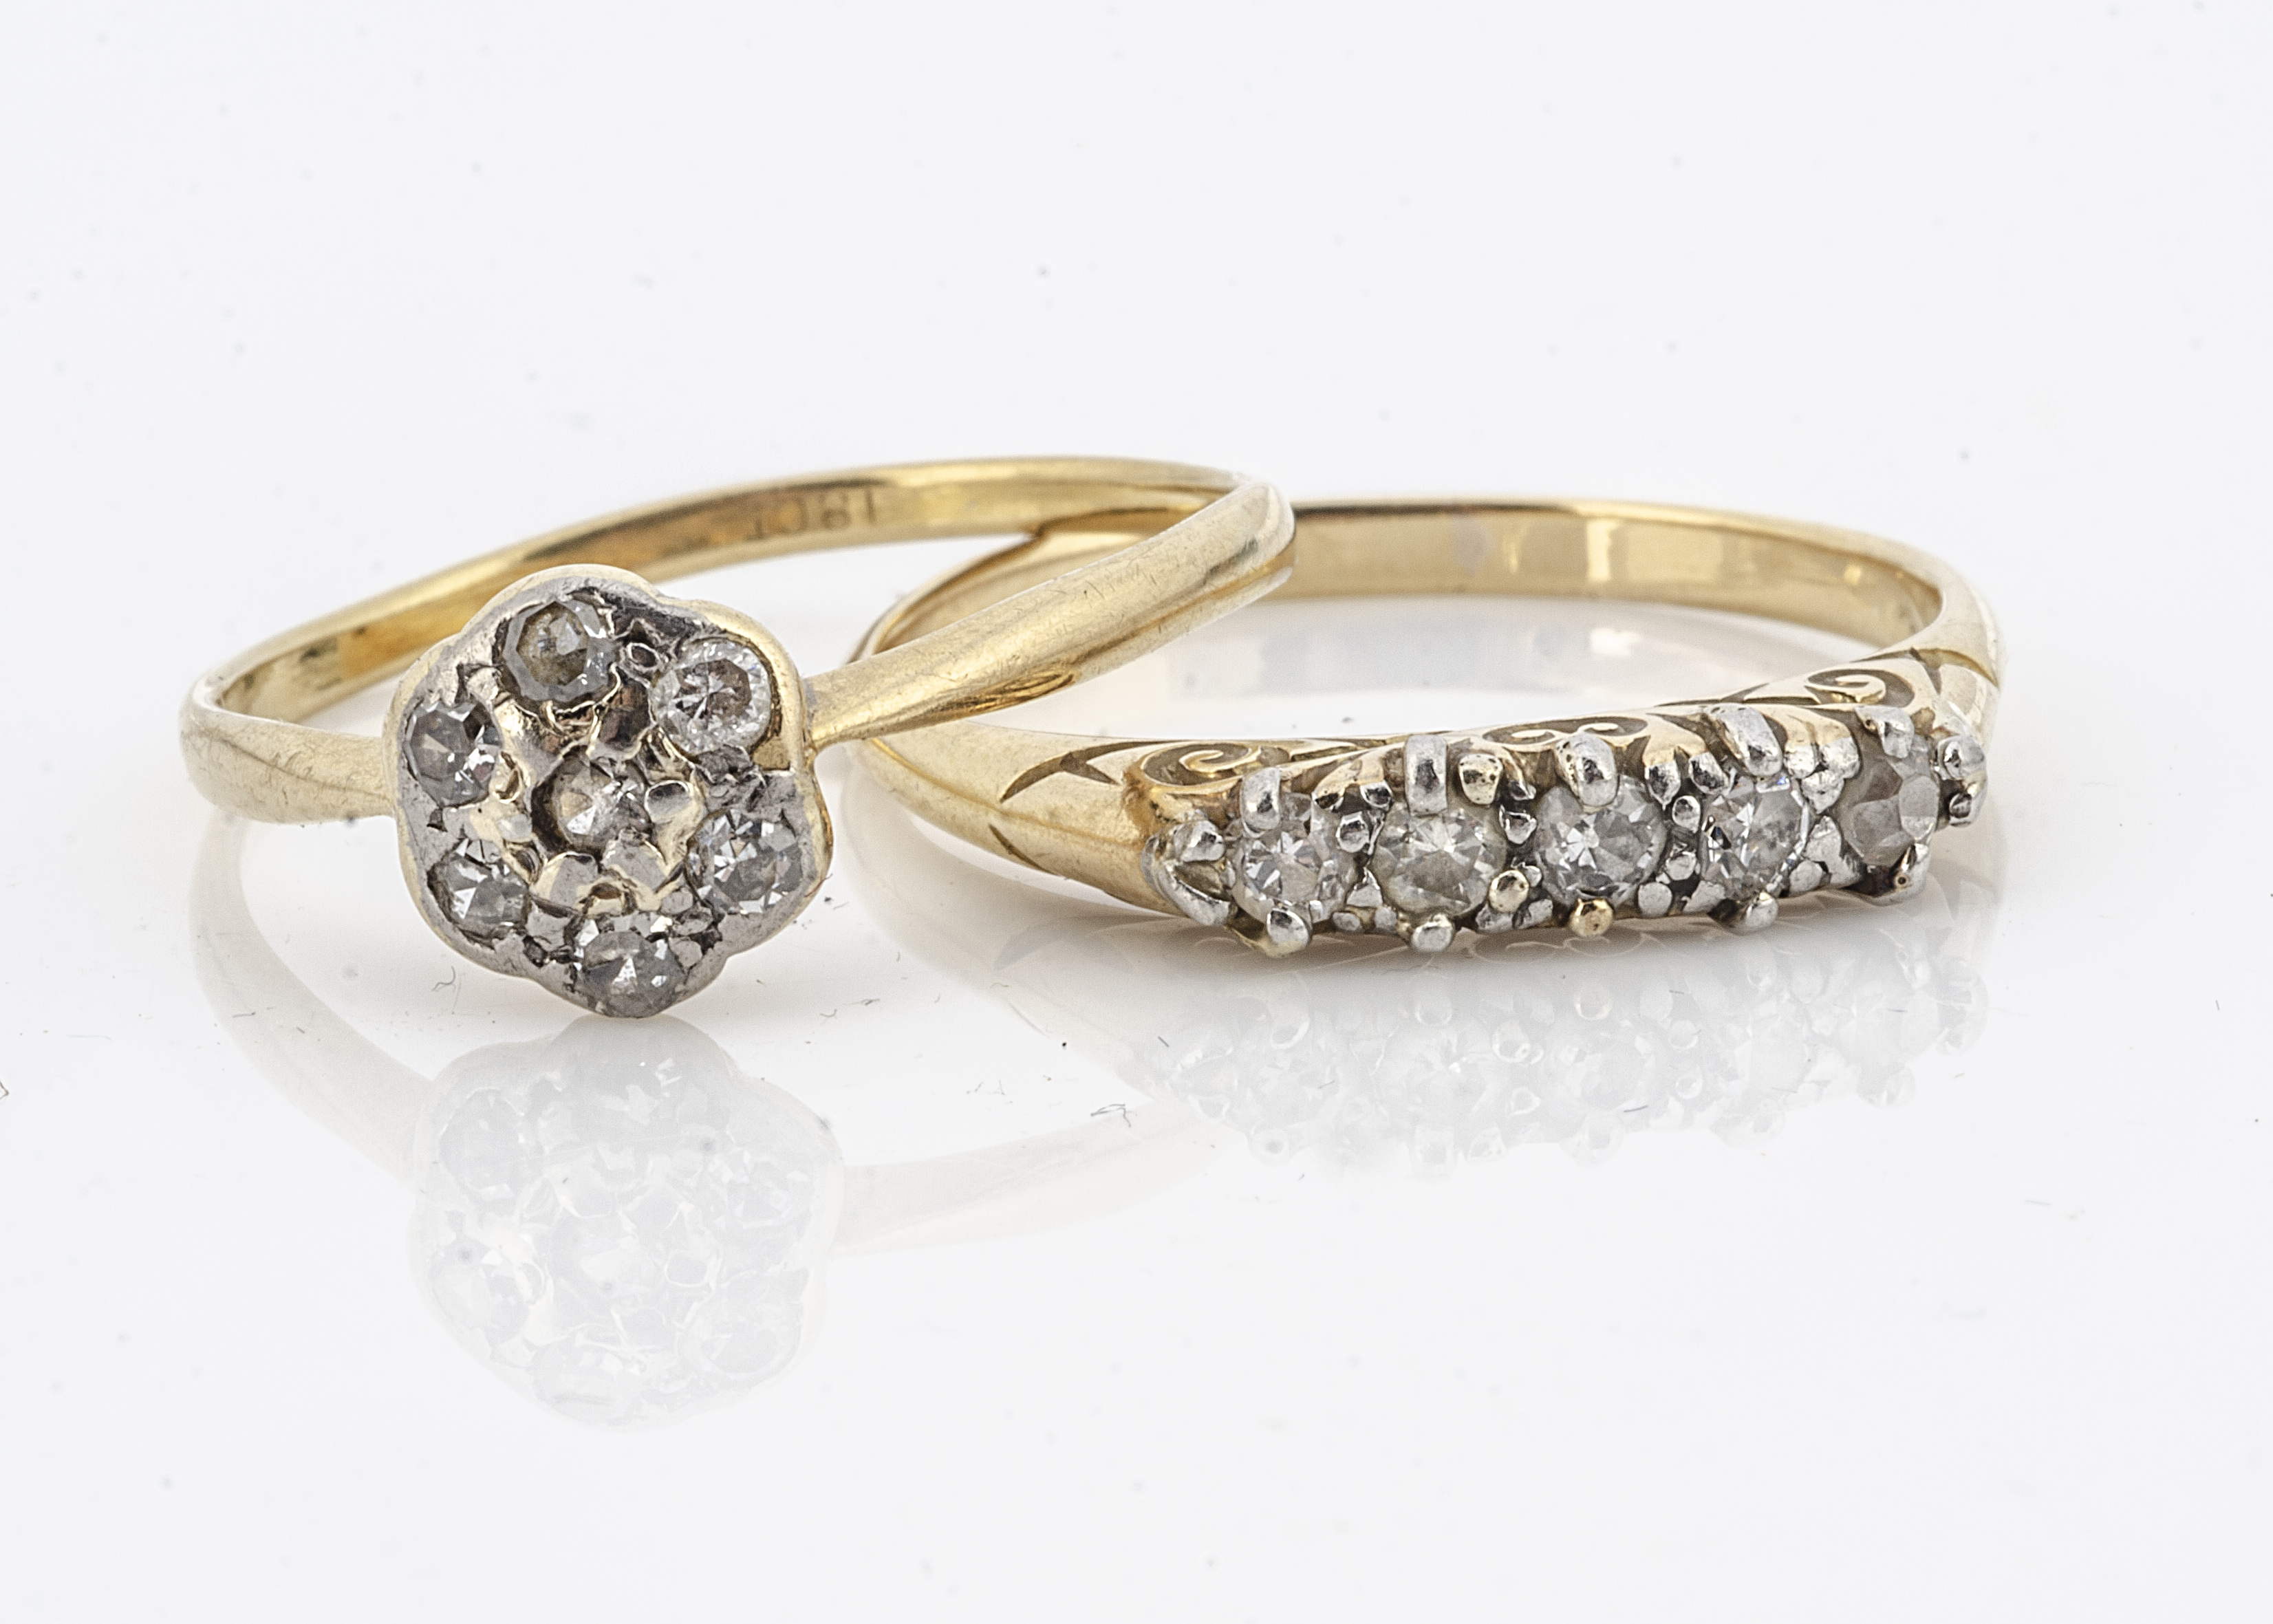 A five stone diamond dress ring, claw set eight cut diamonds in white metal on yellow gold shank